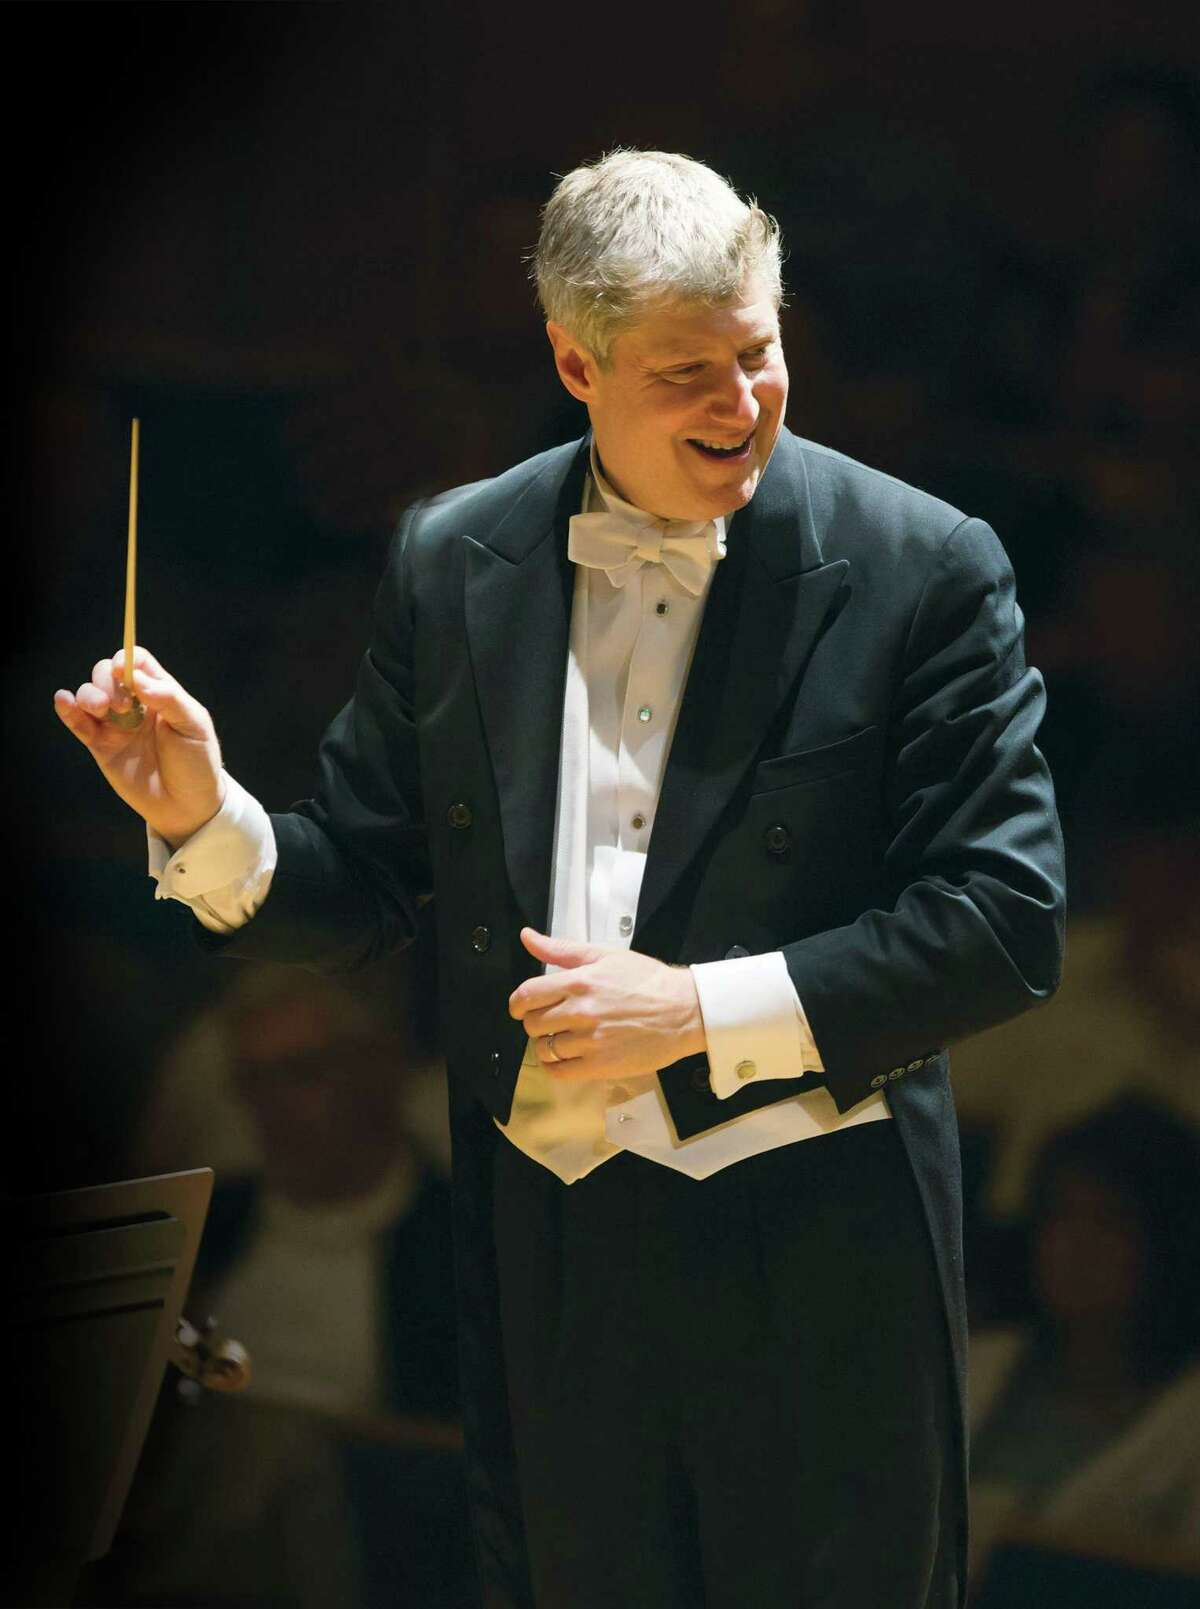 Michael Stern conducts the Stamford Symphony, which recently dedicated a performance of